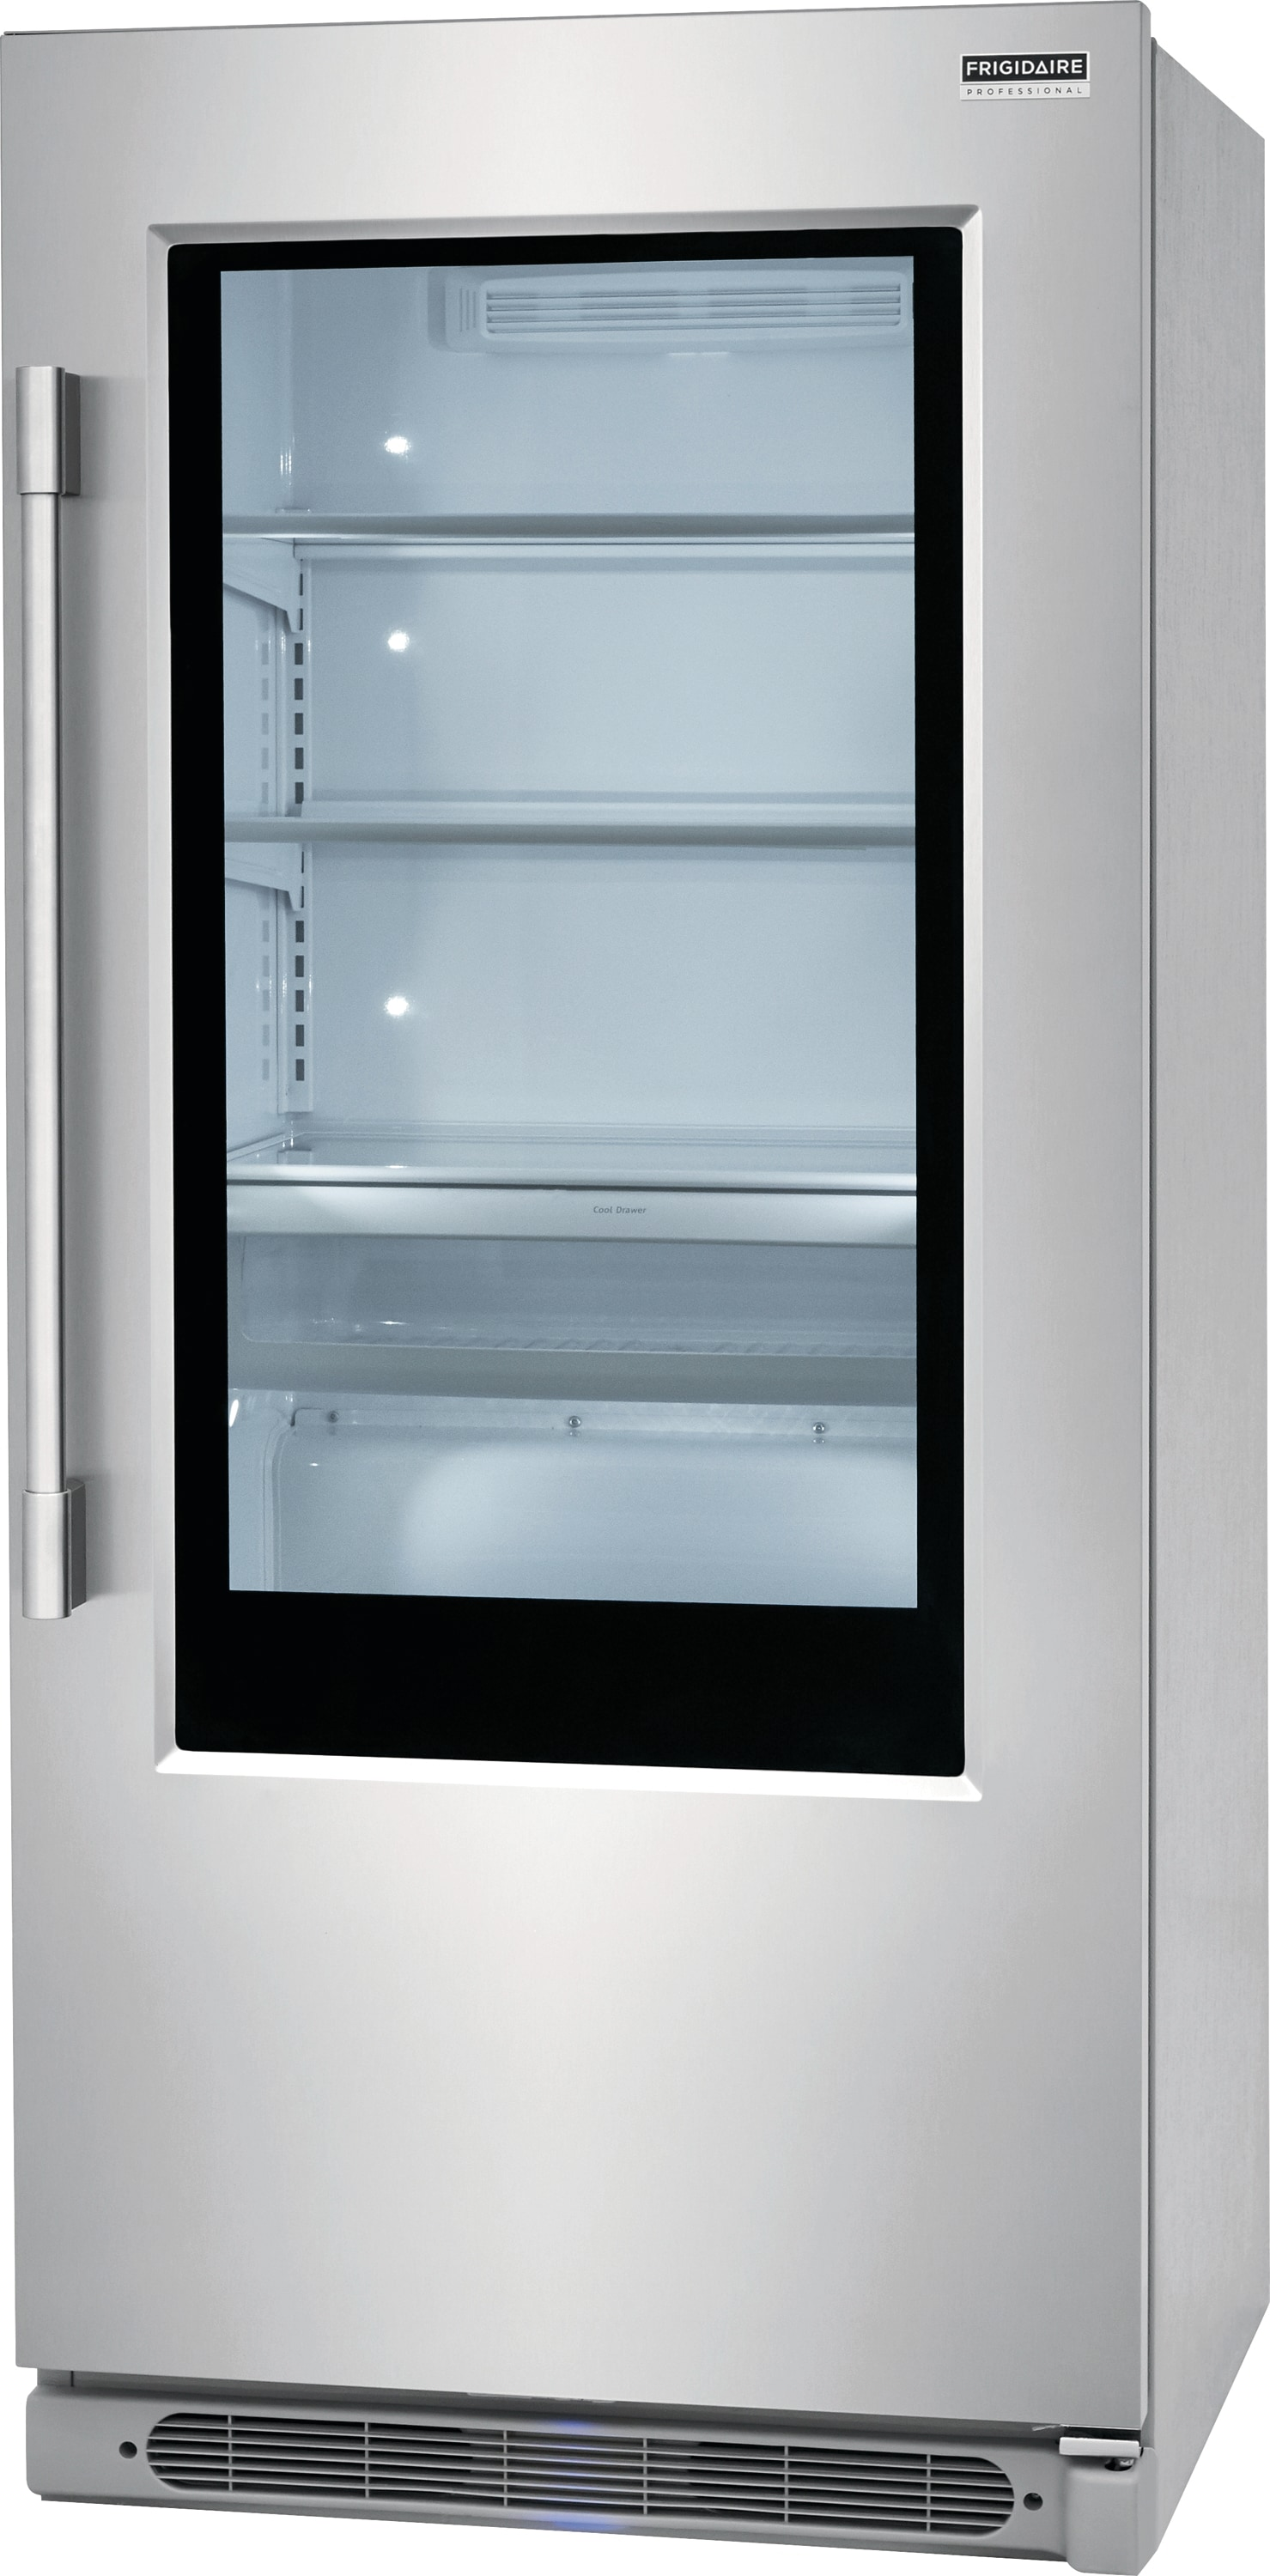 19 Cu. Ft. Glass Door All Refrigerator